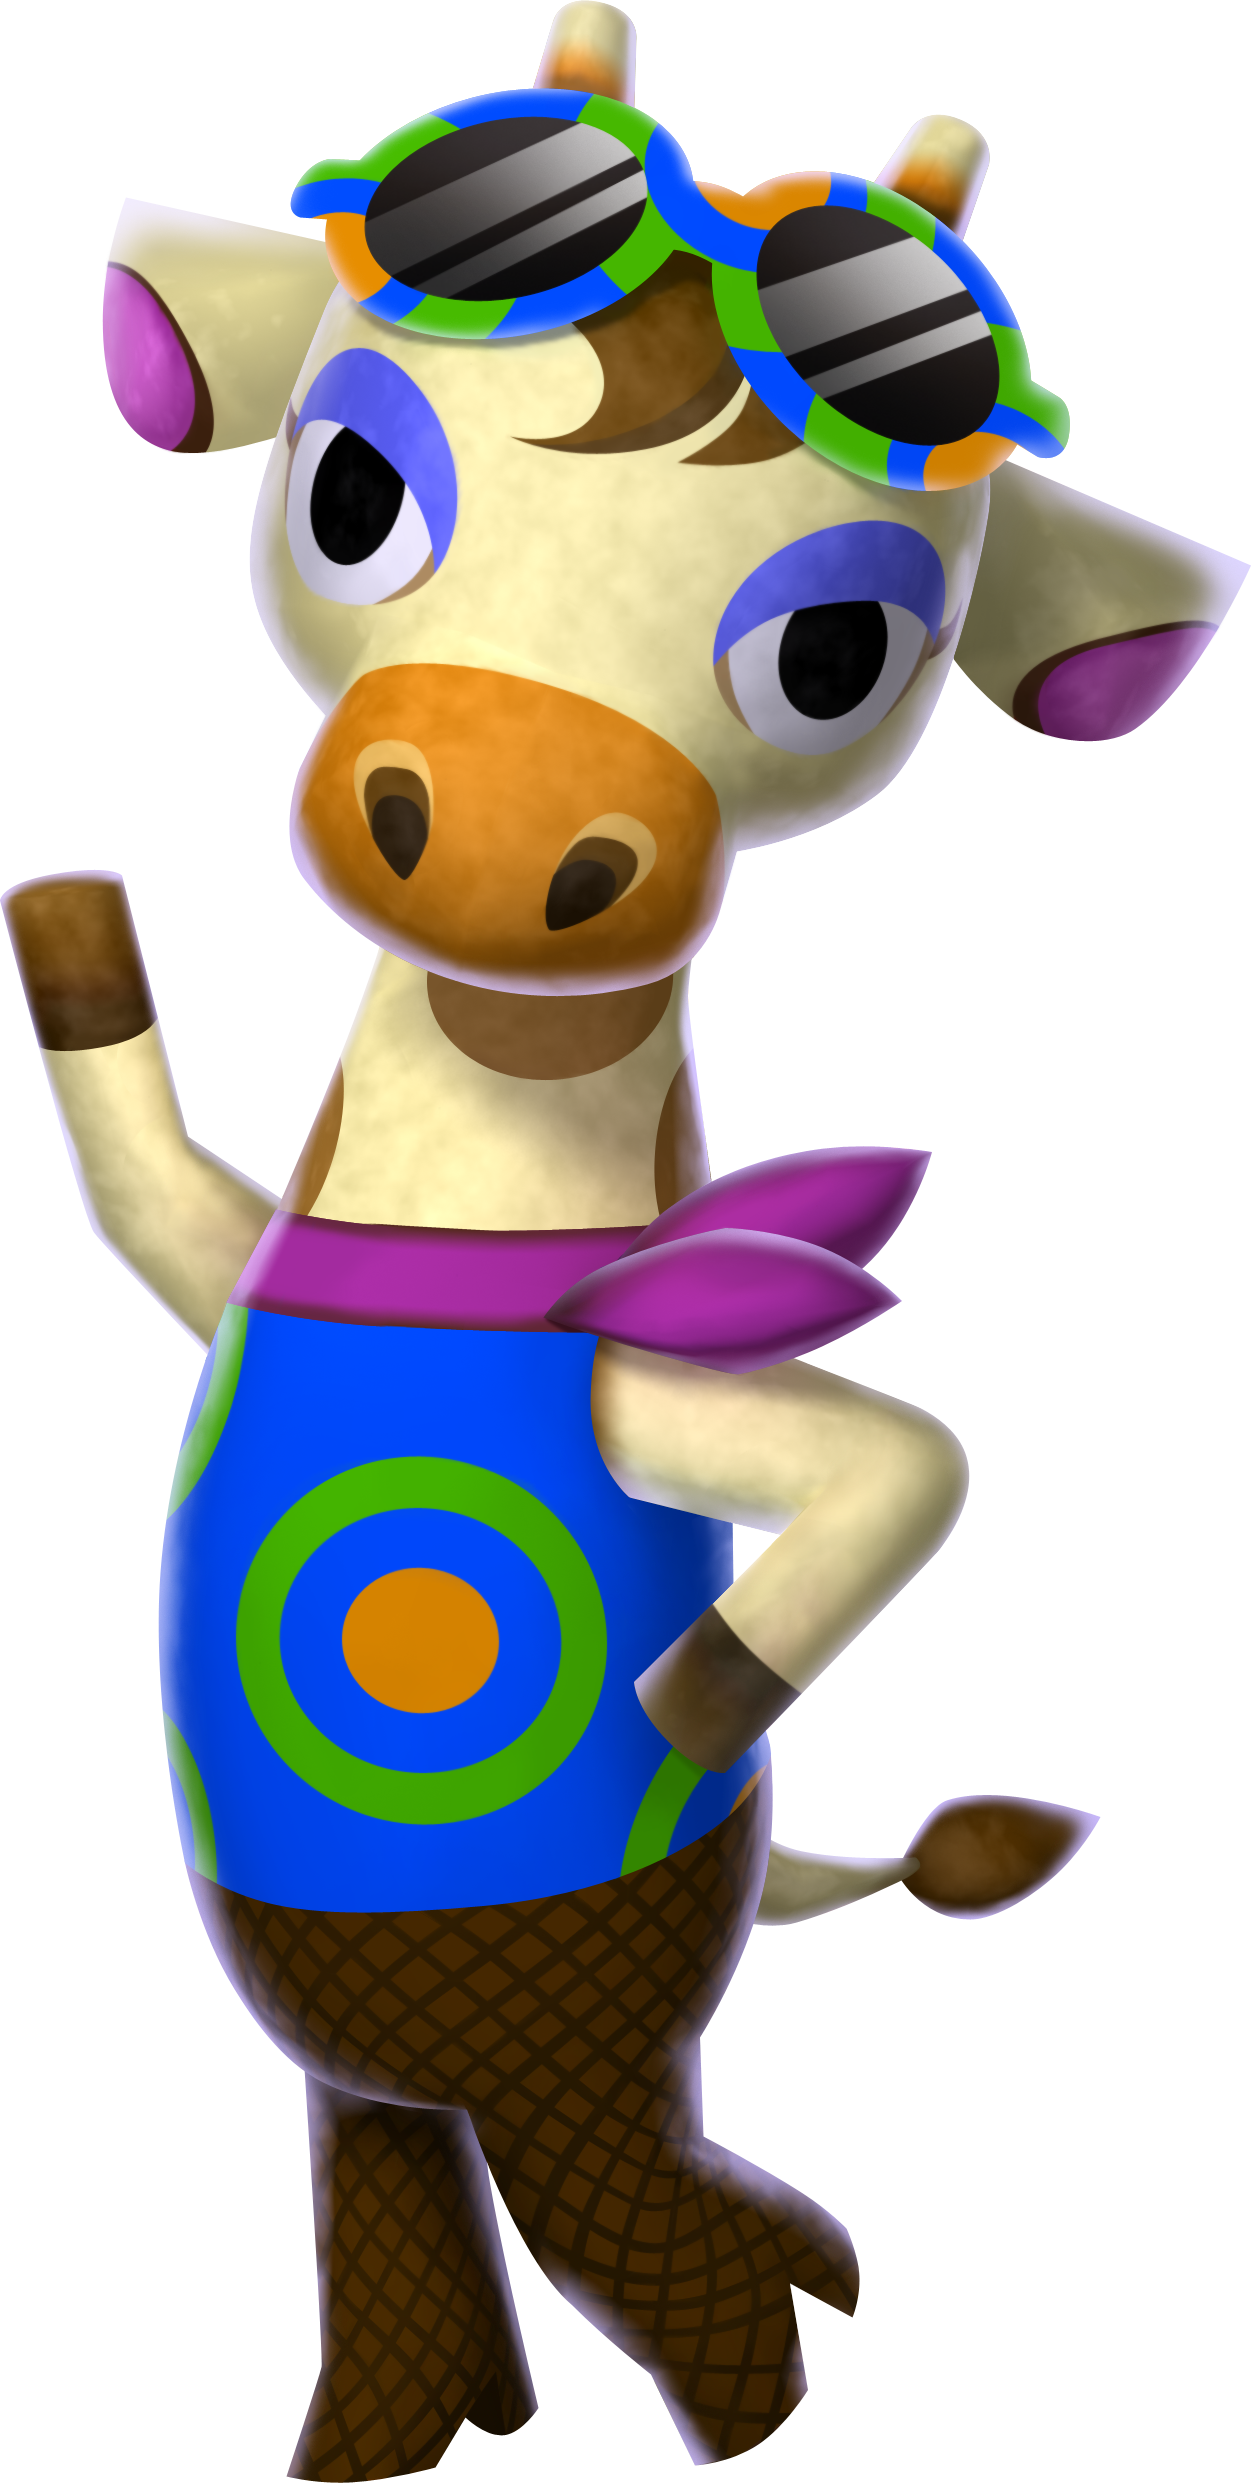 Graciela  Animal Crossing Enciclopedia  Fandom powered ...